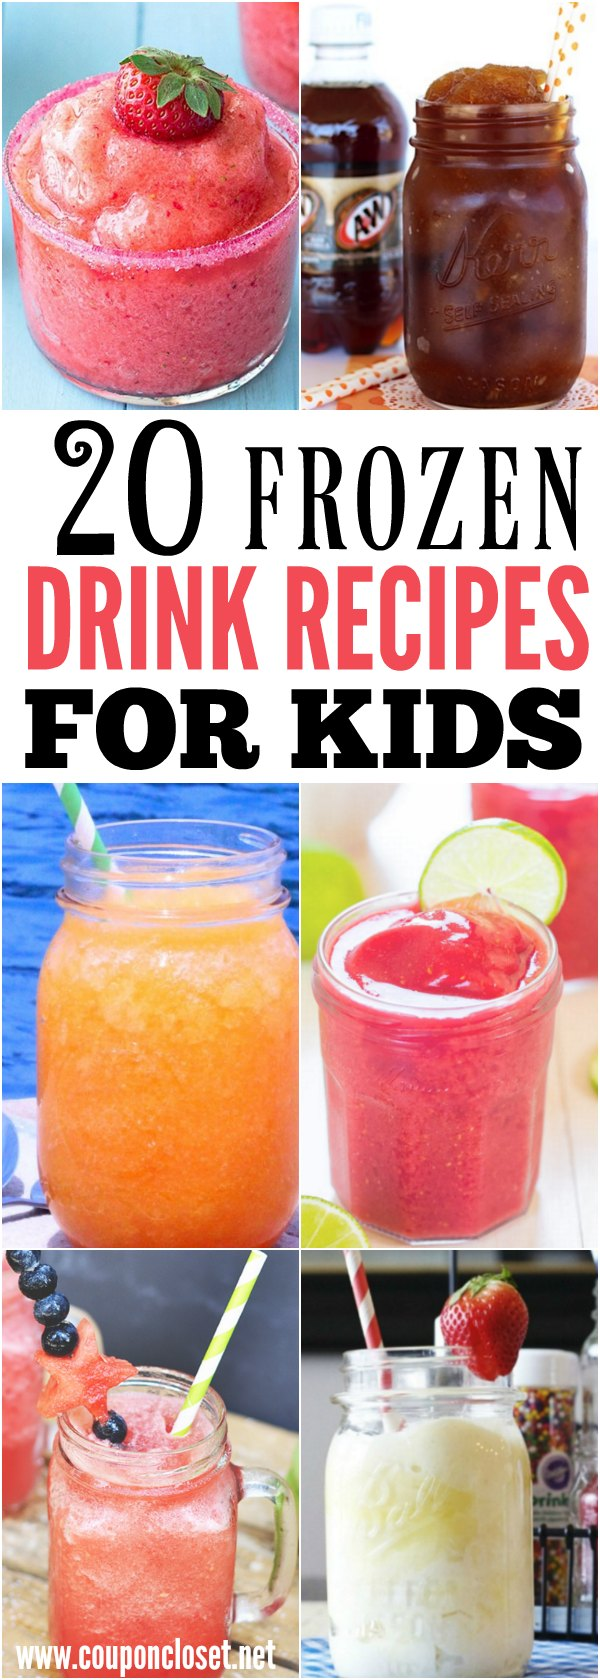 Take a look at these 20 kid friendly frozen drink recipes. Beat the heat with these quick and easy drinks. They are all so delicious and refreshing!